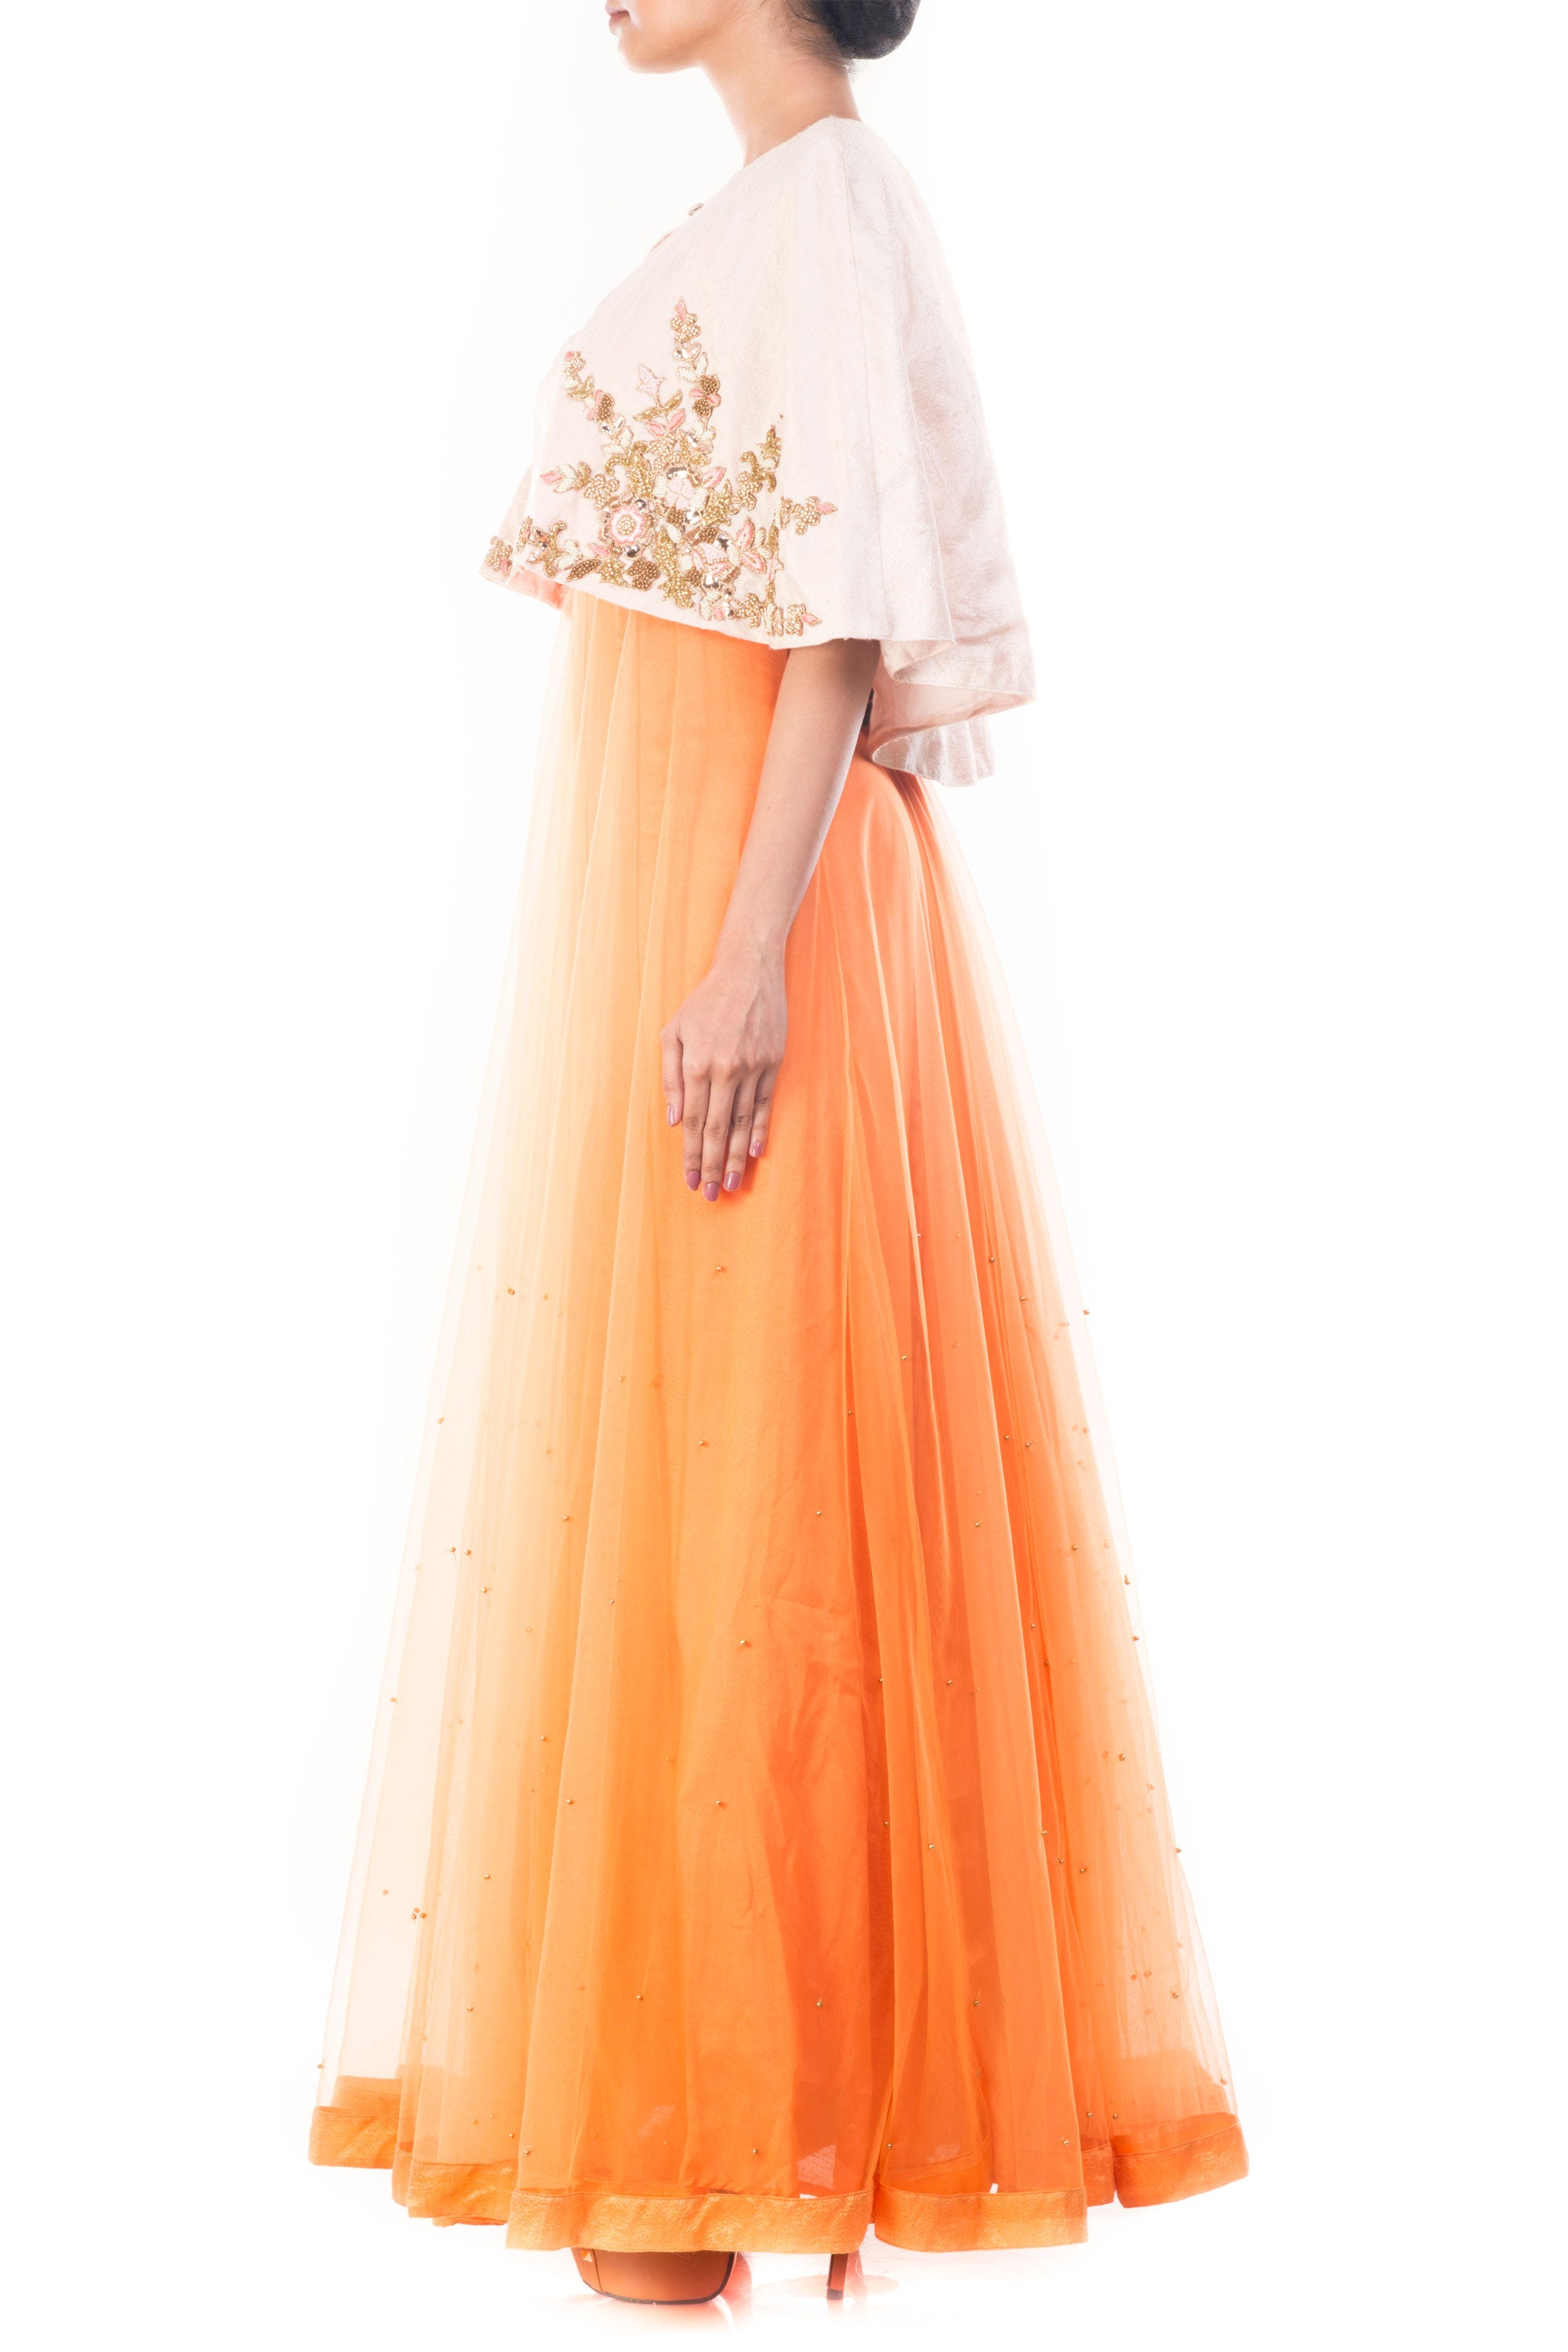 Tangerine Vintage Gown With Embellished Jacket Side